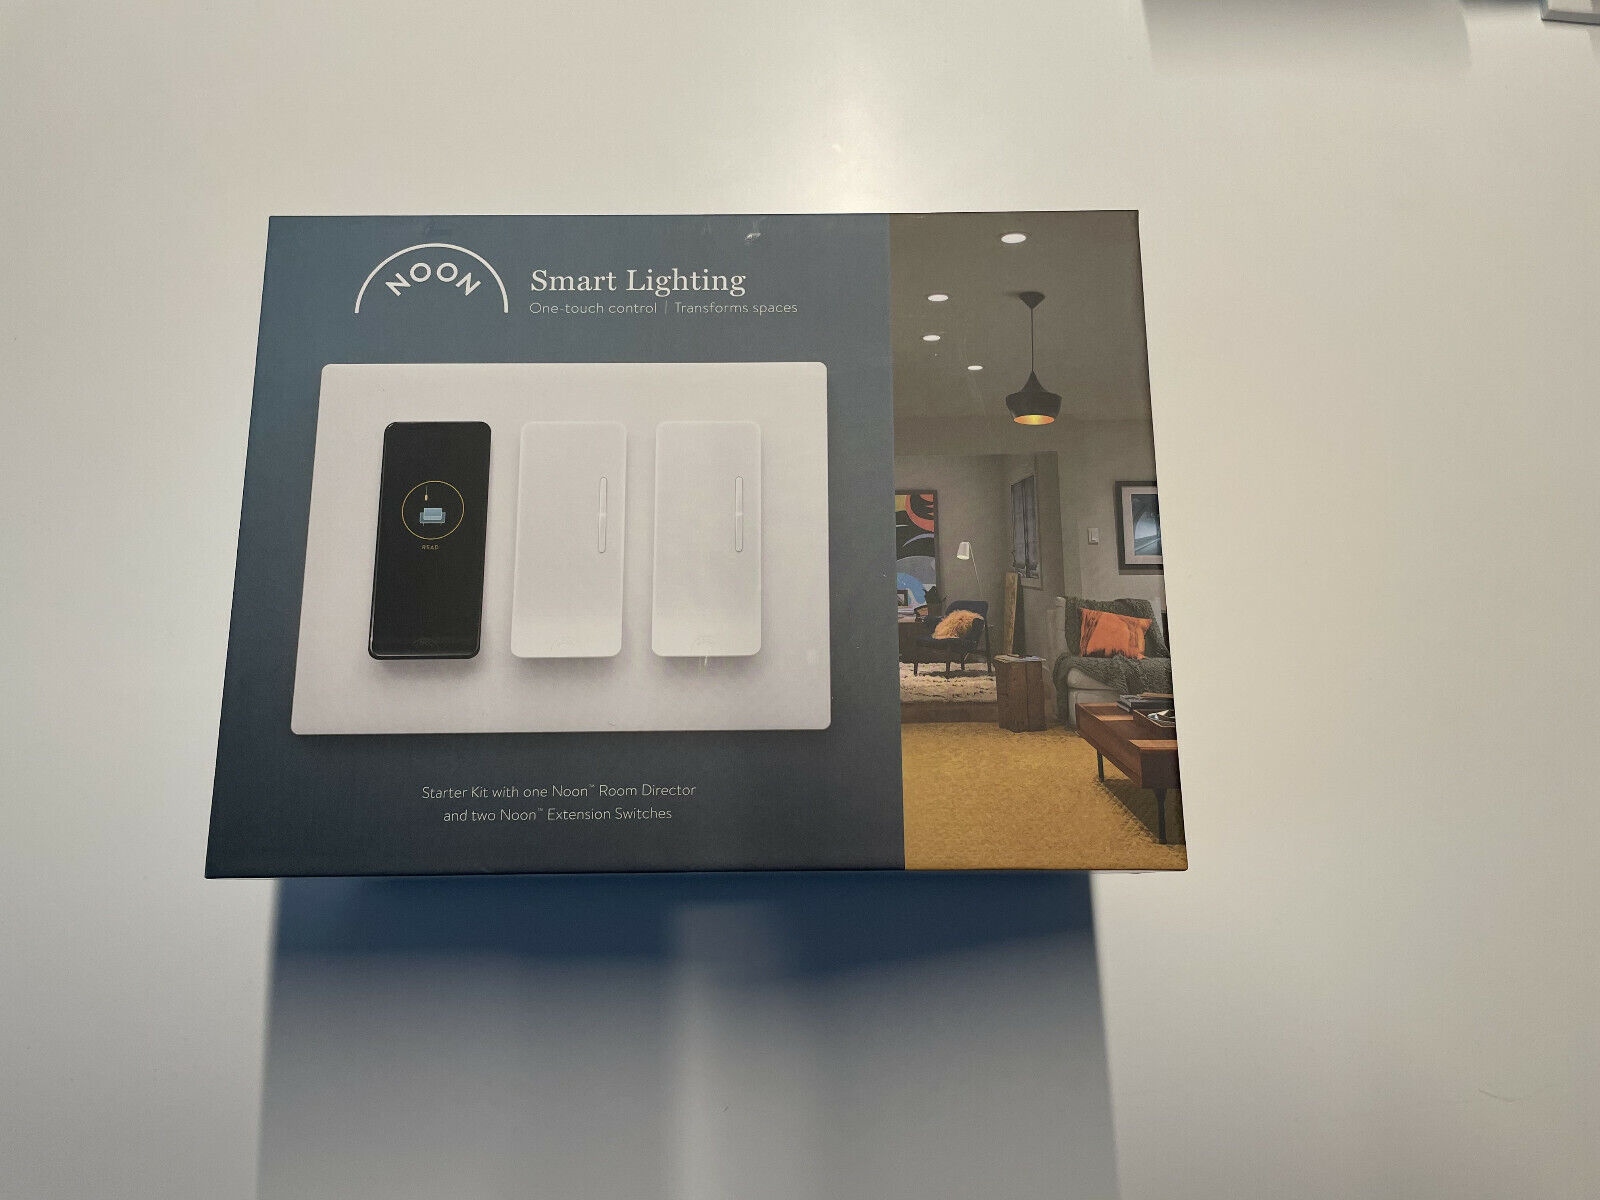 Noon Smart Lighting Kit 3 Switches 1 Additional Switch Various Wall Plates - $275.00